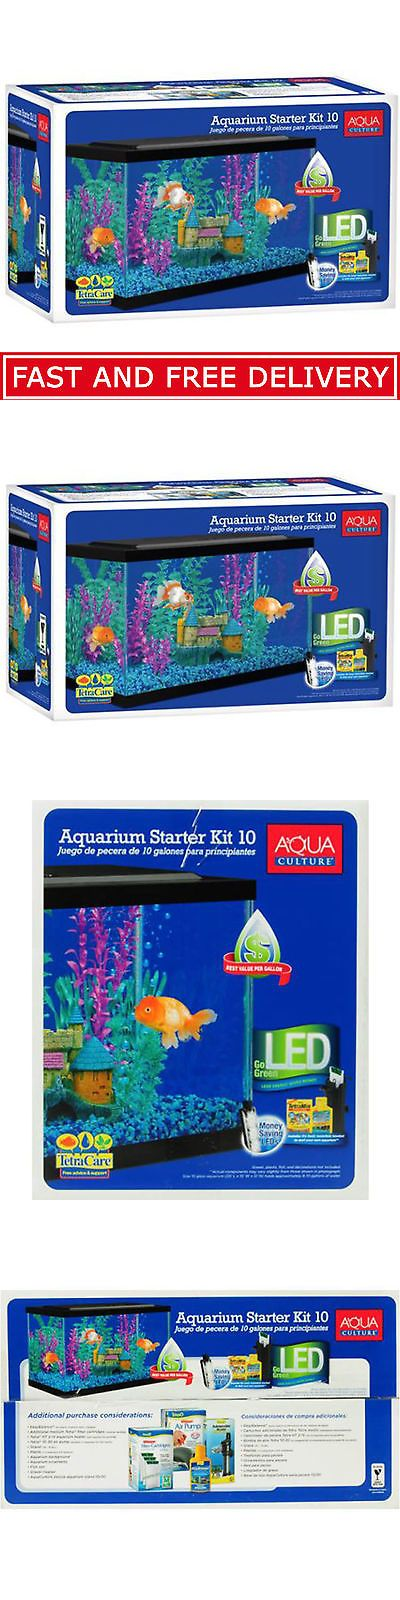 Aquariums and Tanks 20755: Aquarium Starter Kit 10 Gallon + Led Light And Filter Clear Glass Fish Tank Set -> BUY IT NOW ONLY: $44.98 on eBay!